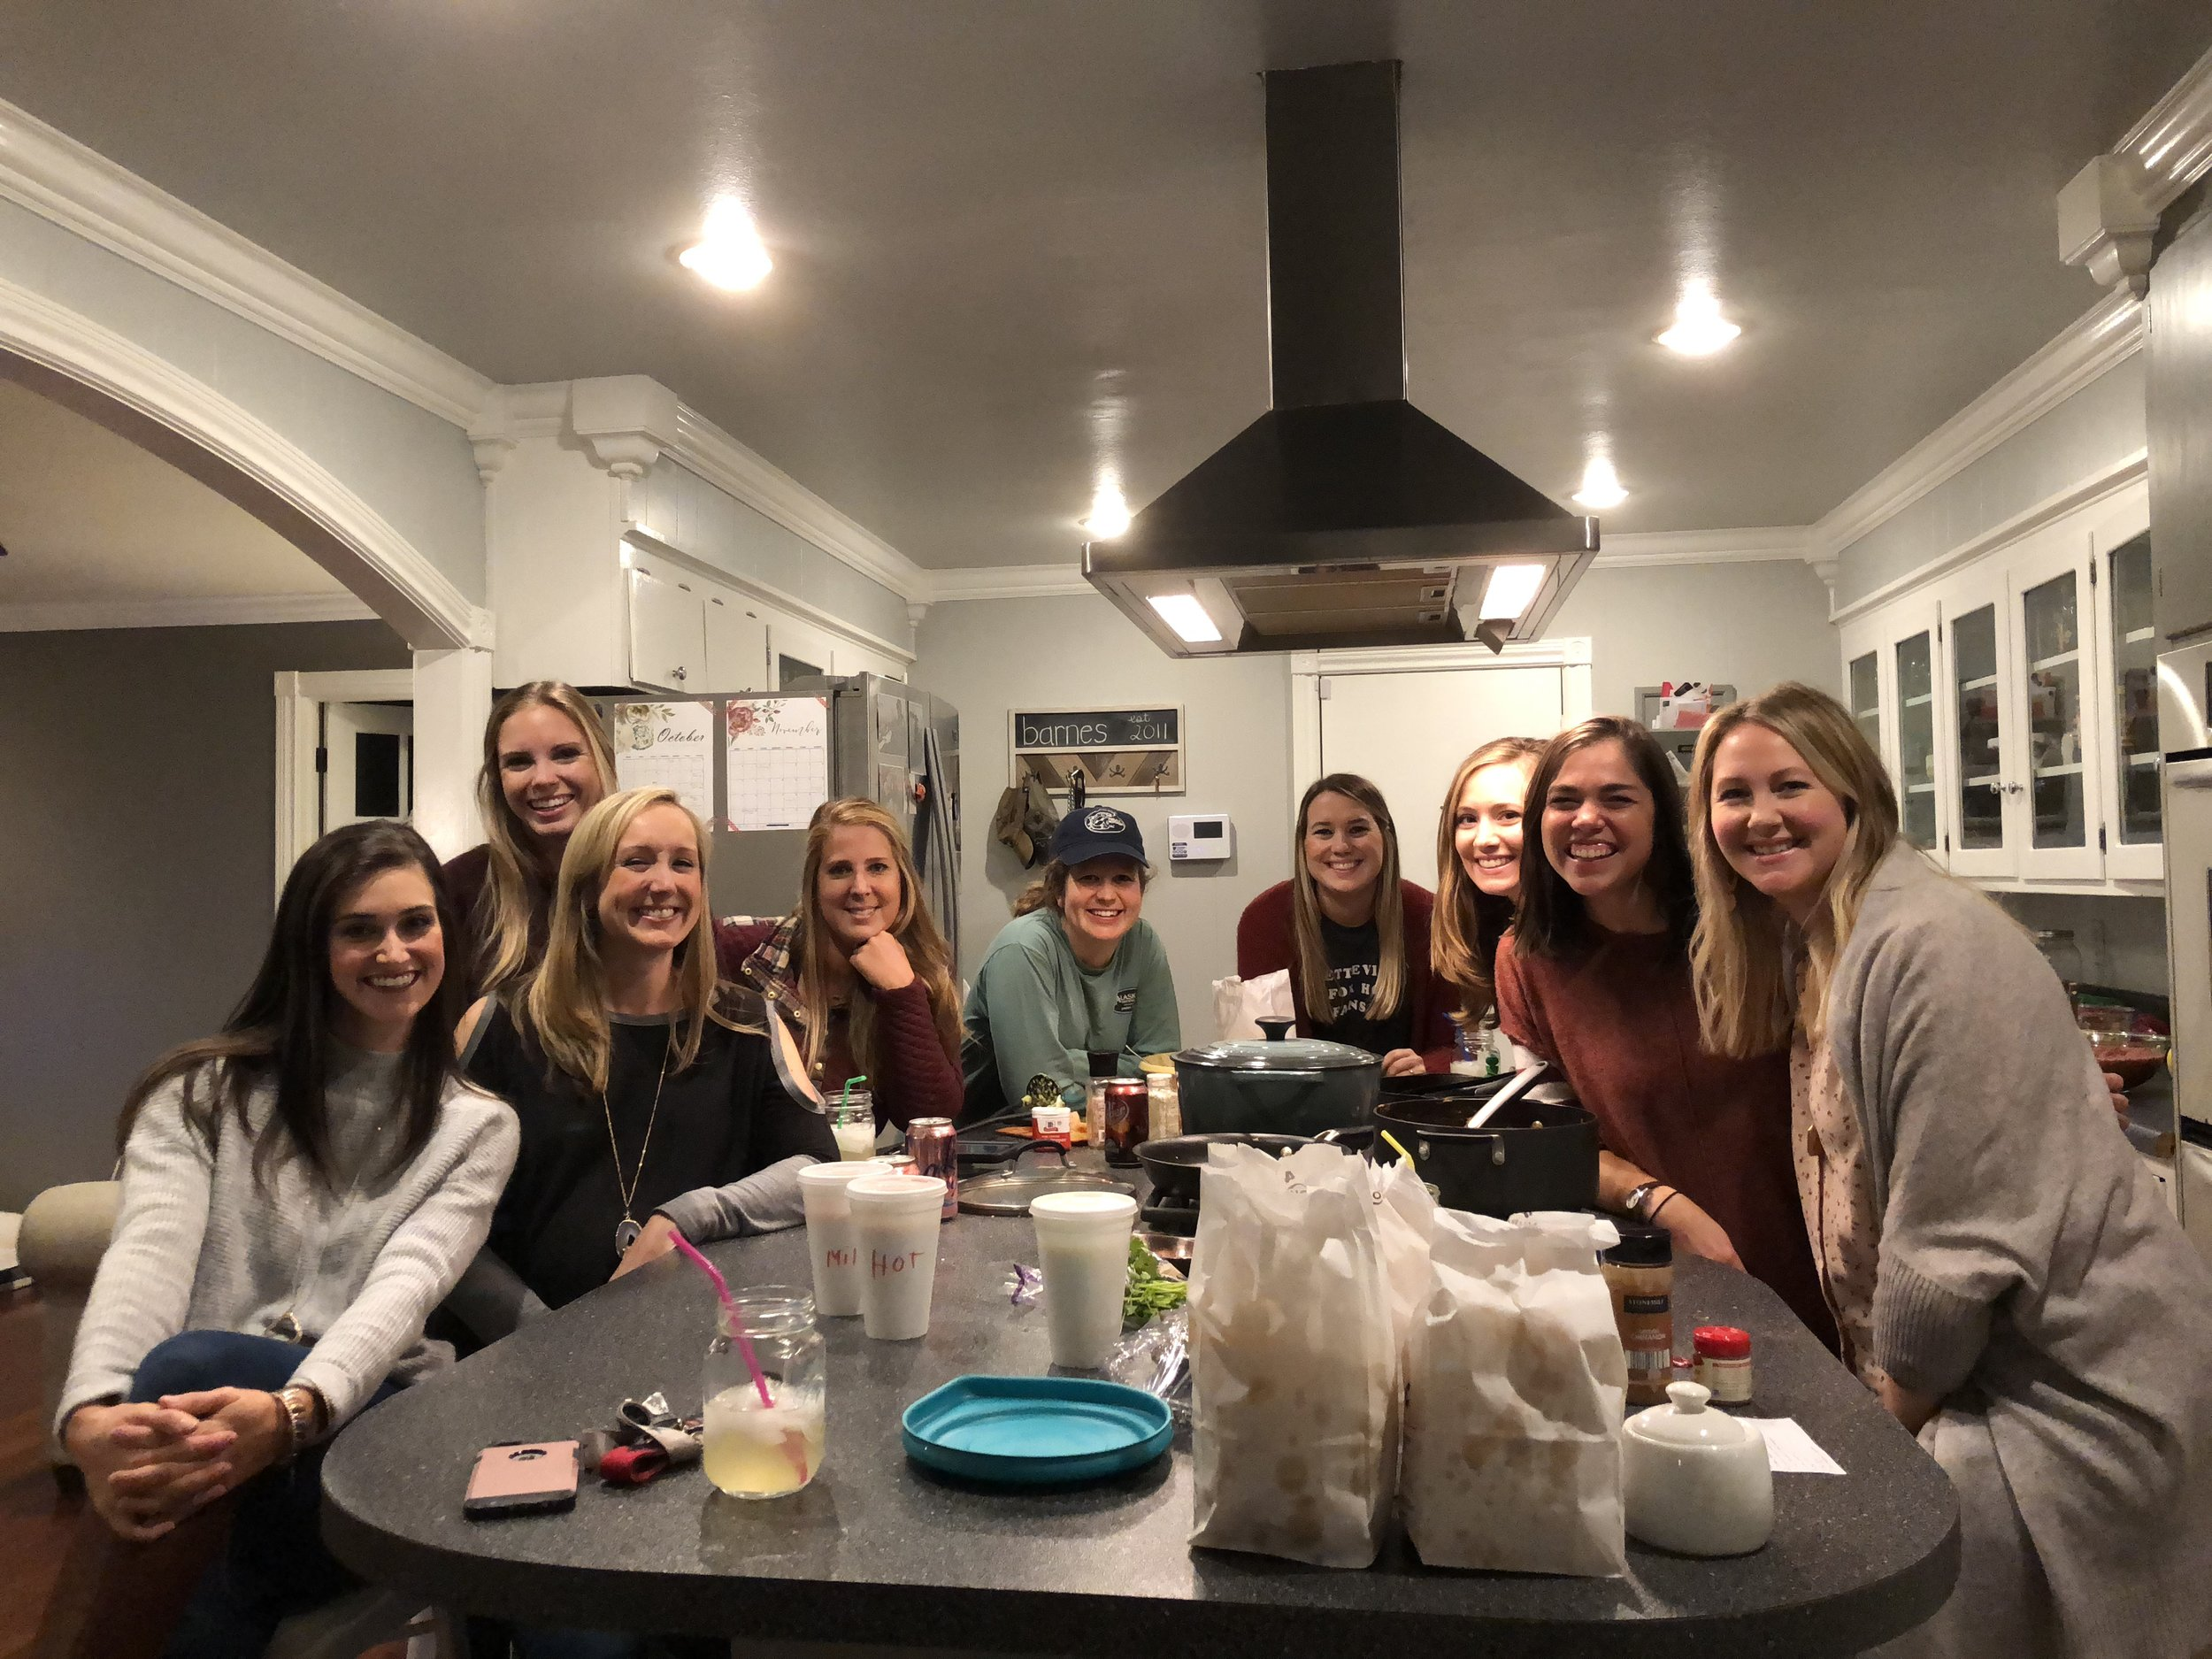 We love using our home to gather people together! For her 30th birthday, Sam hosted a girls night with some of her closest friends.